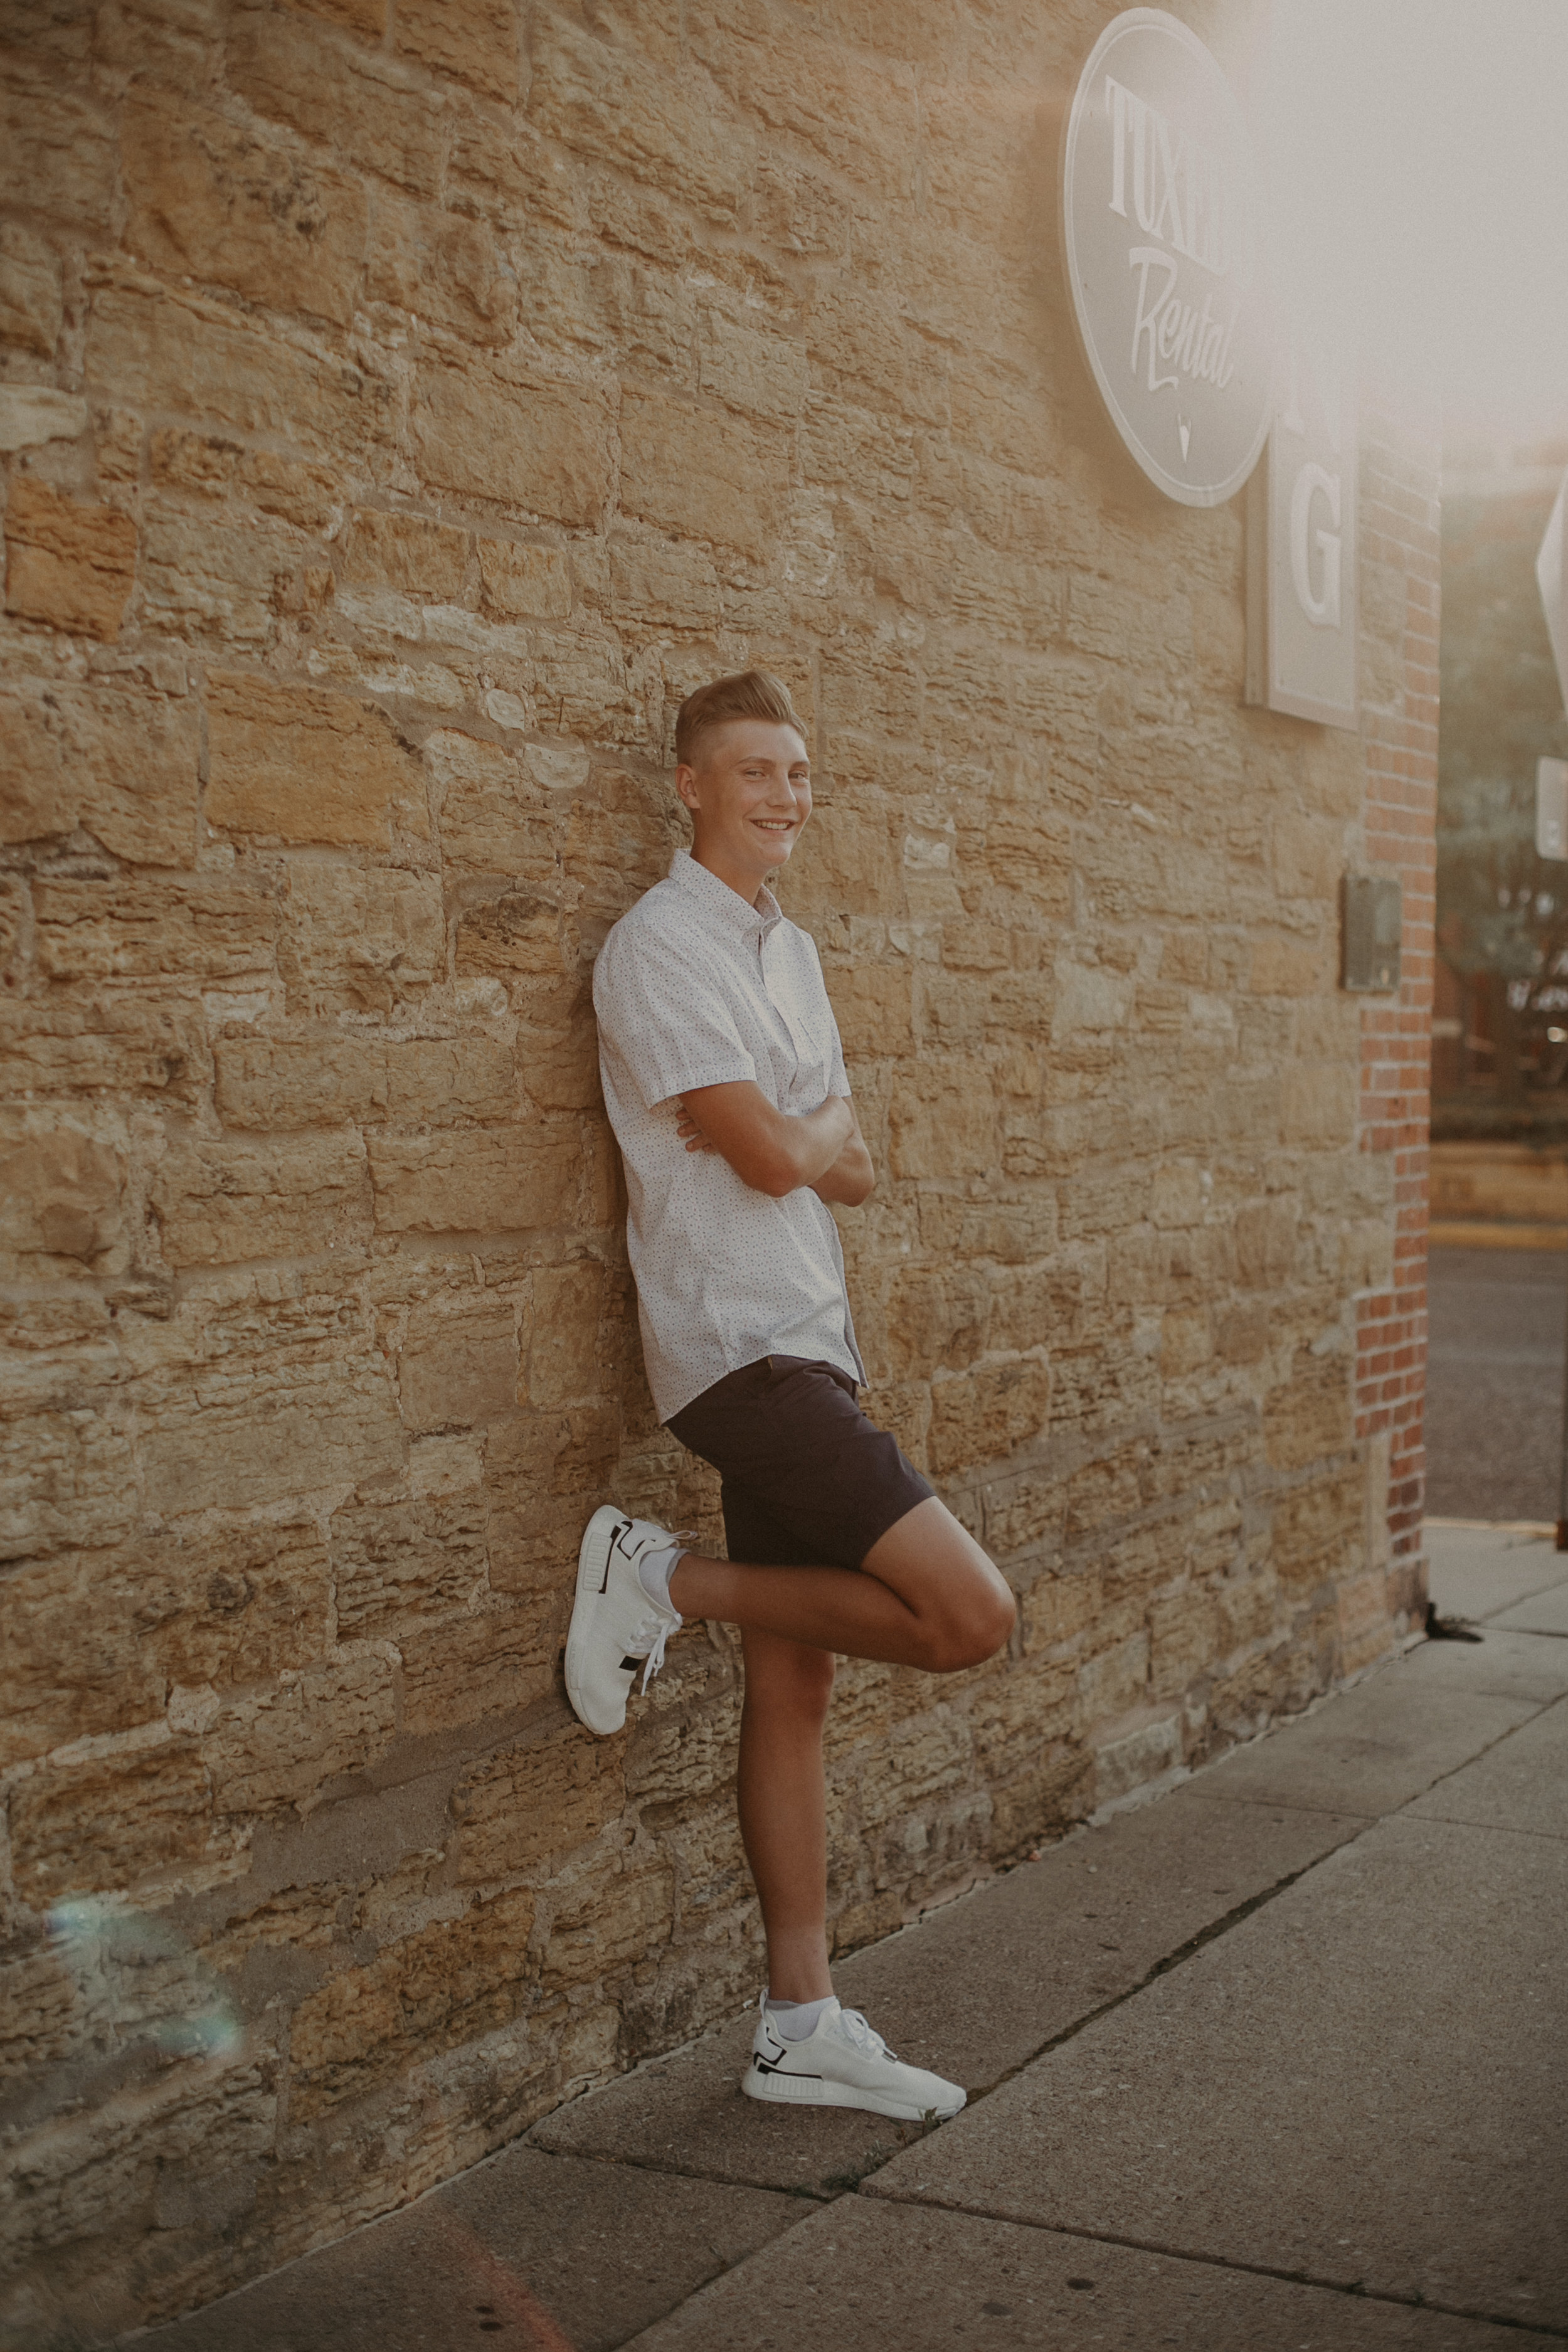 River Falls senior photographer Andrea Wagner captures male senior portraits against brick wall